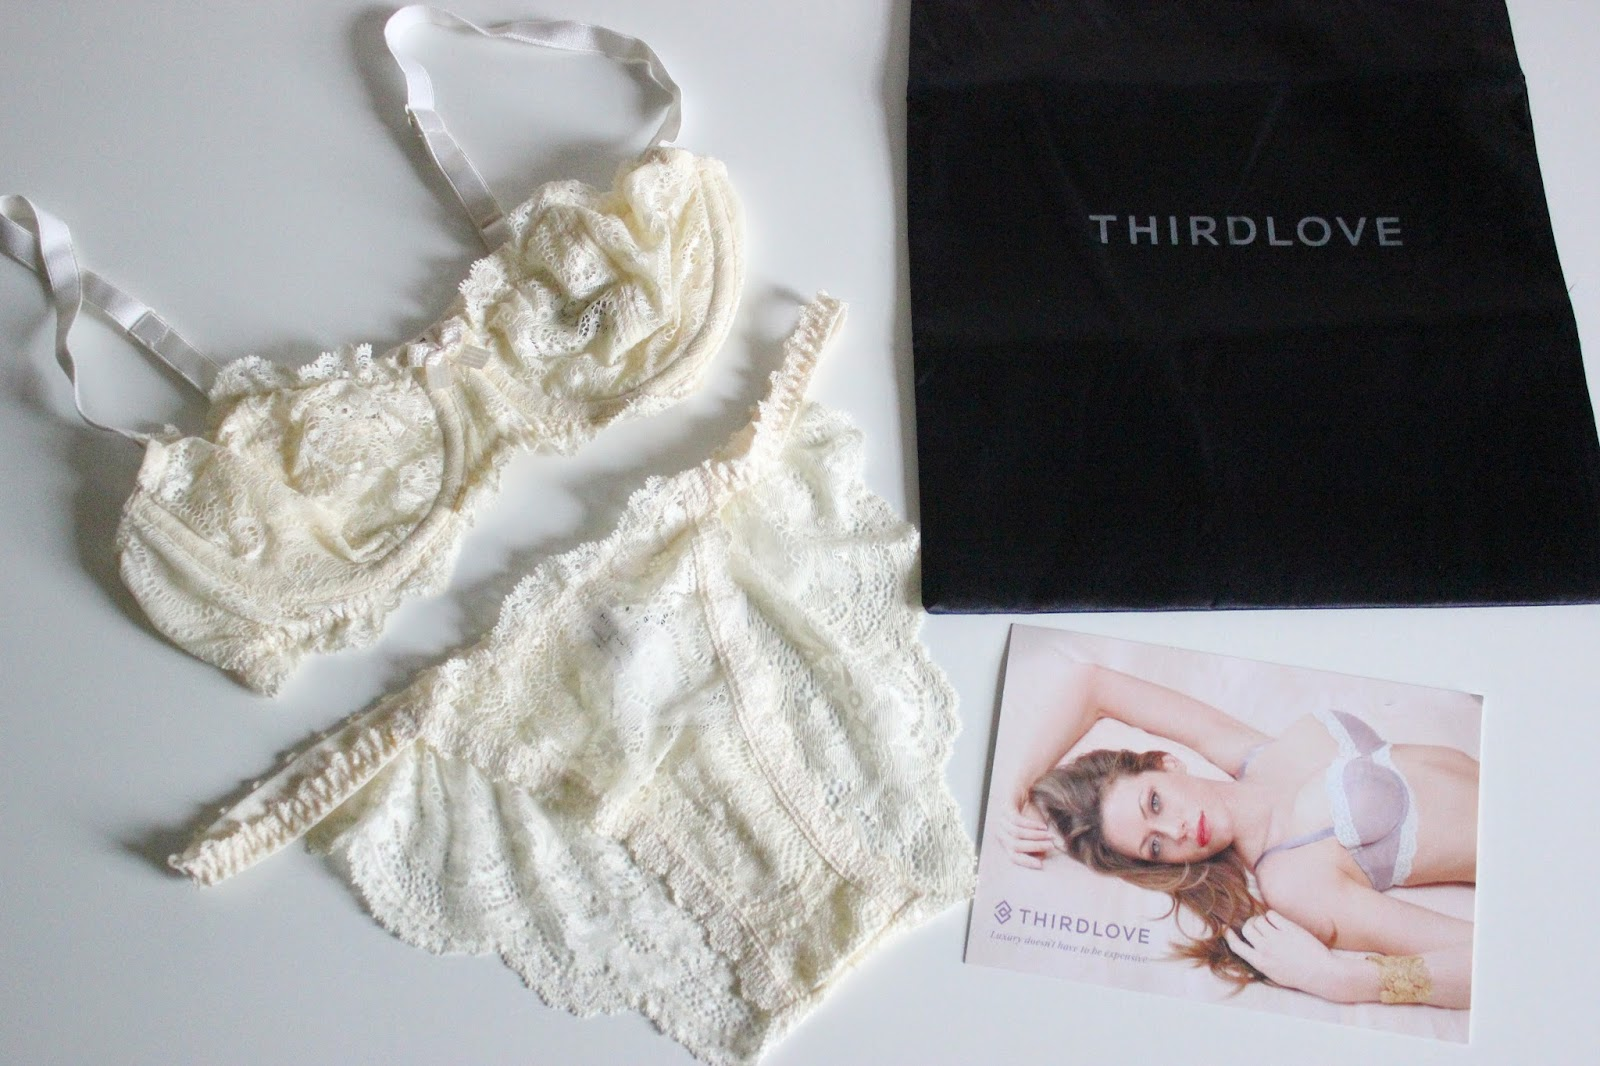 ThirdLove Lingerie Review